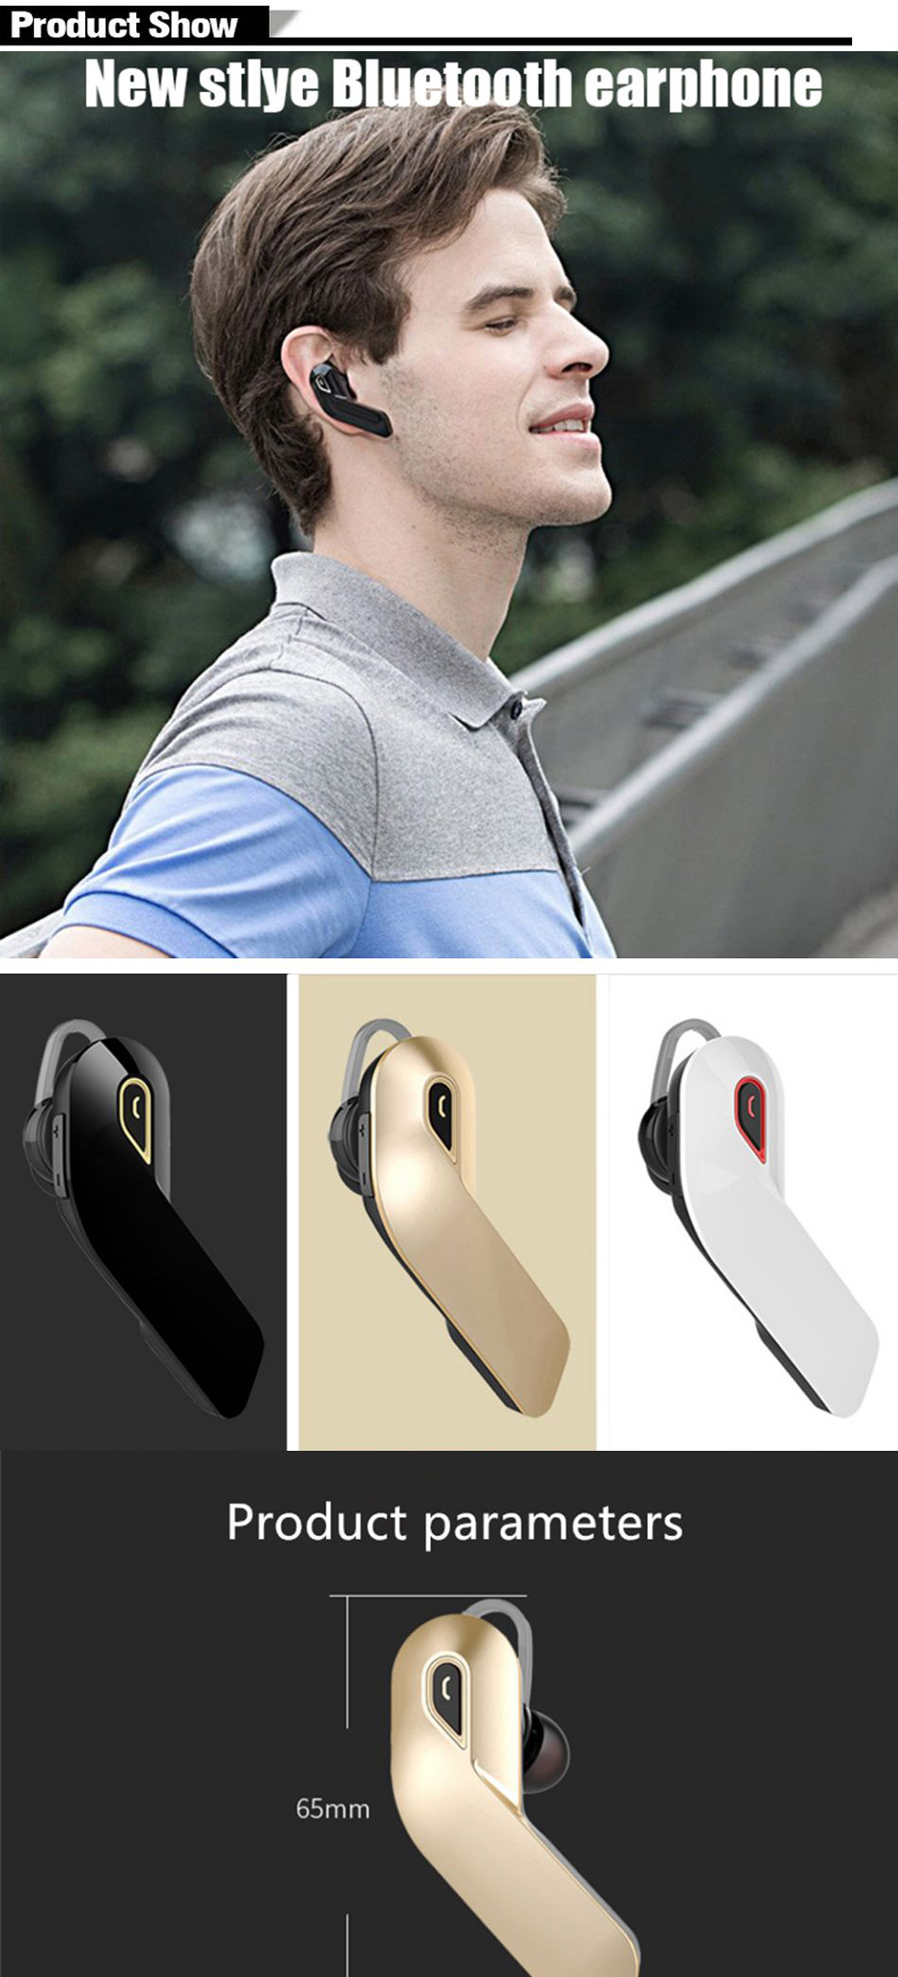 Y97 Bluetooth Headset Stereo Handsfree Business Mini Wireless Jabra Rox Earphone Putih Limited 4 Connection Distance 10 Meters